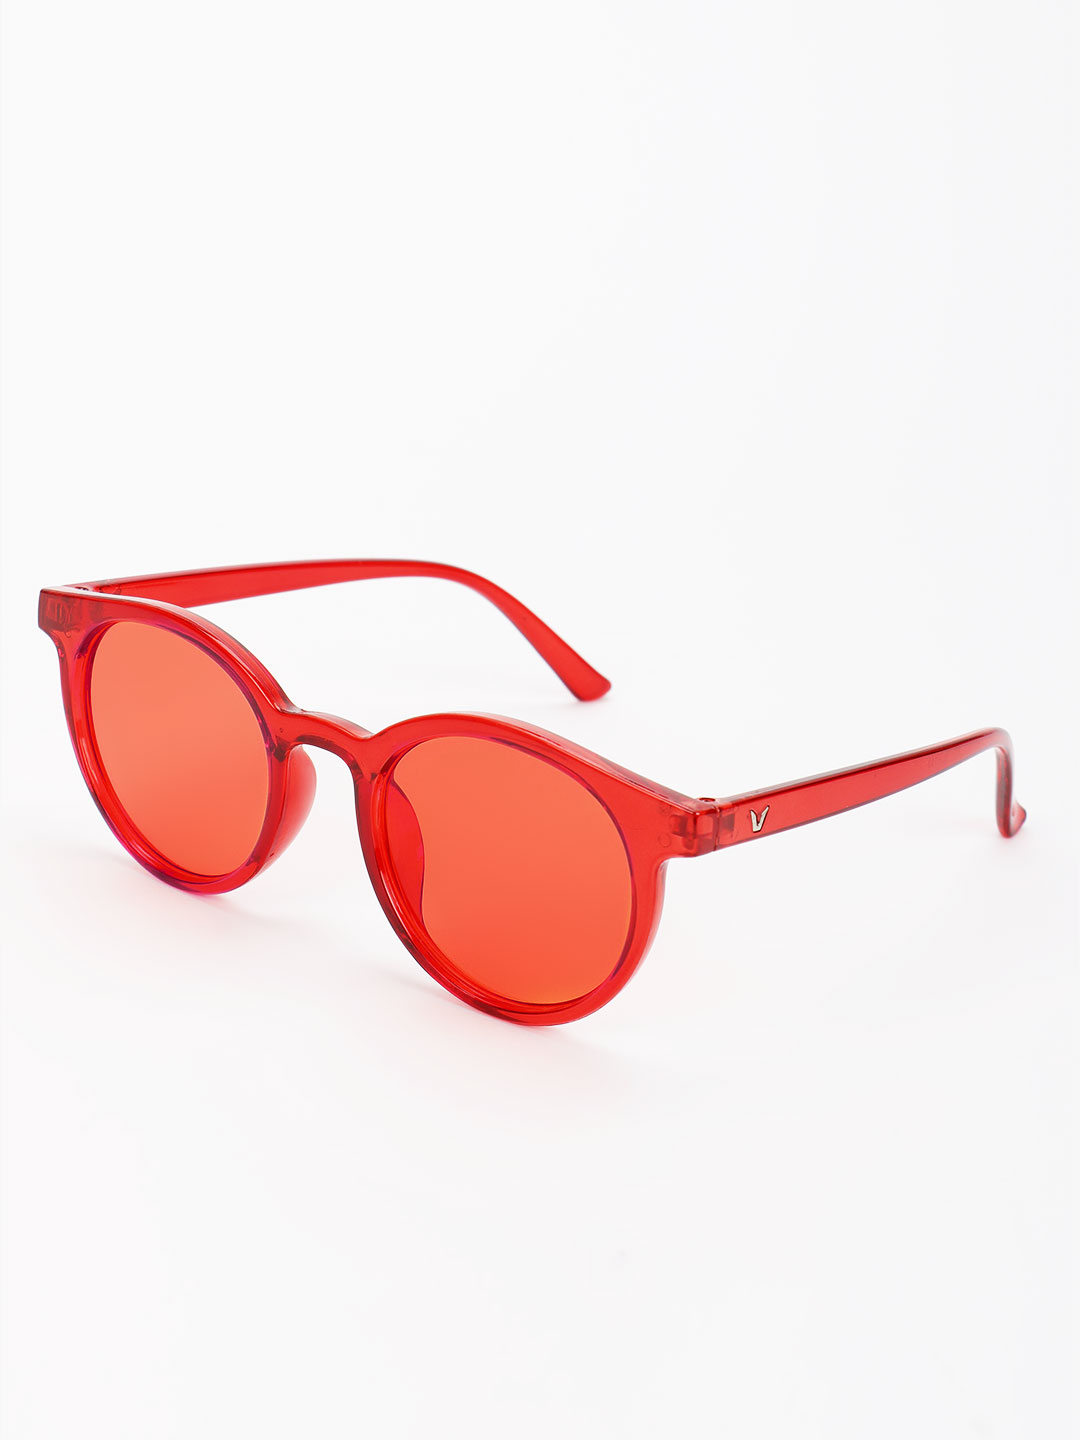 Pataaka Red Coloured Lens Round Sunglasses 1